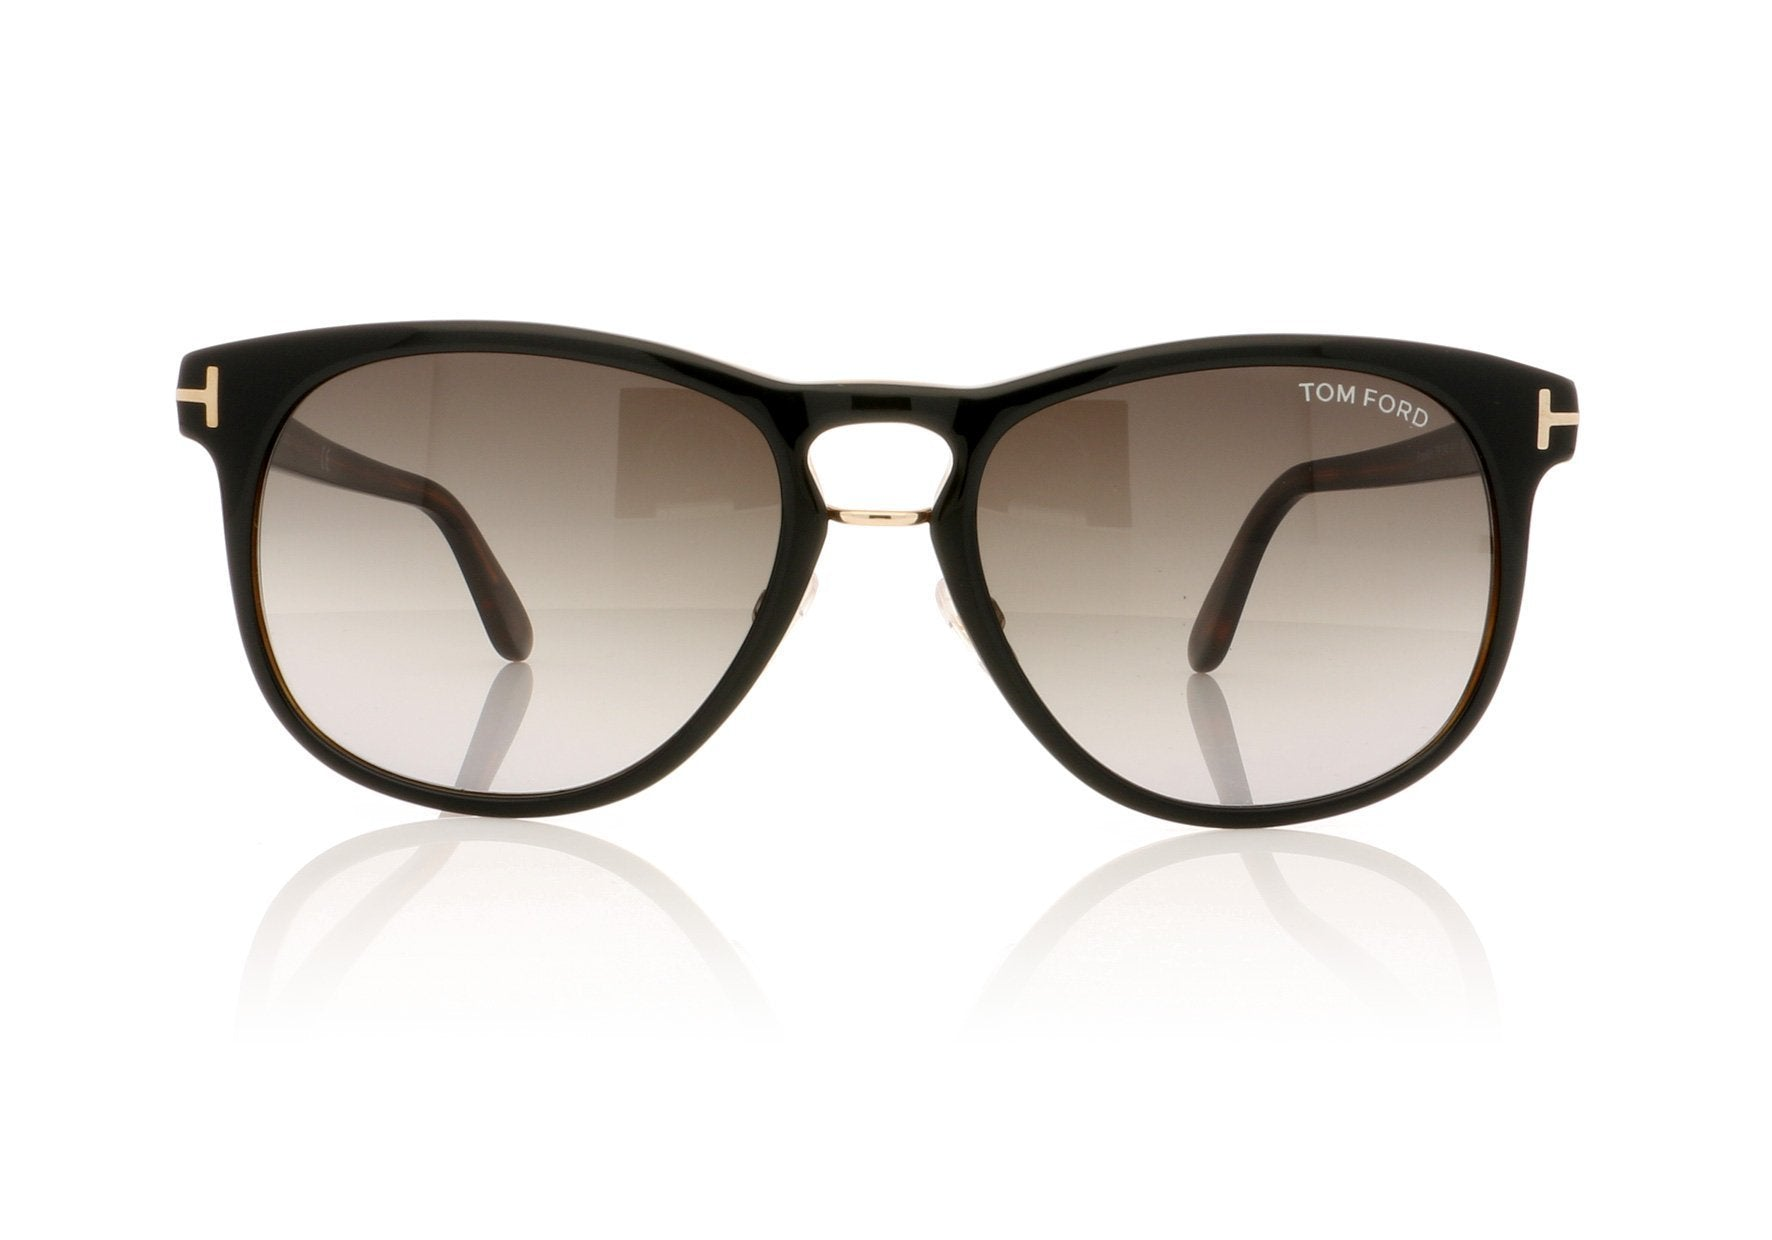 a71044a4290 Tom Ford Franklin TF346 01V Shiny Black Sunglasses at OCO